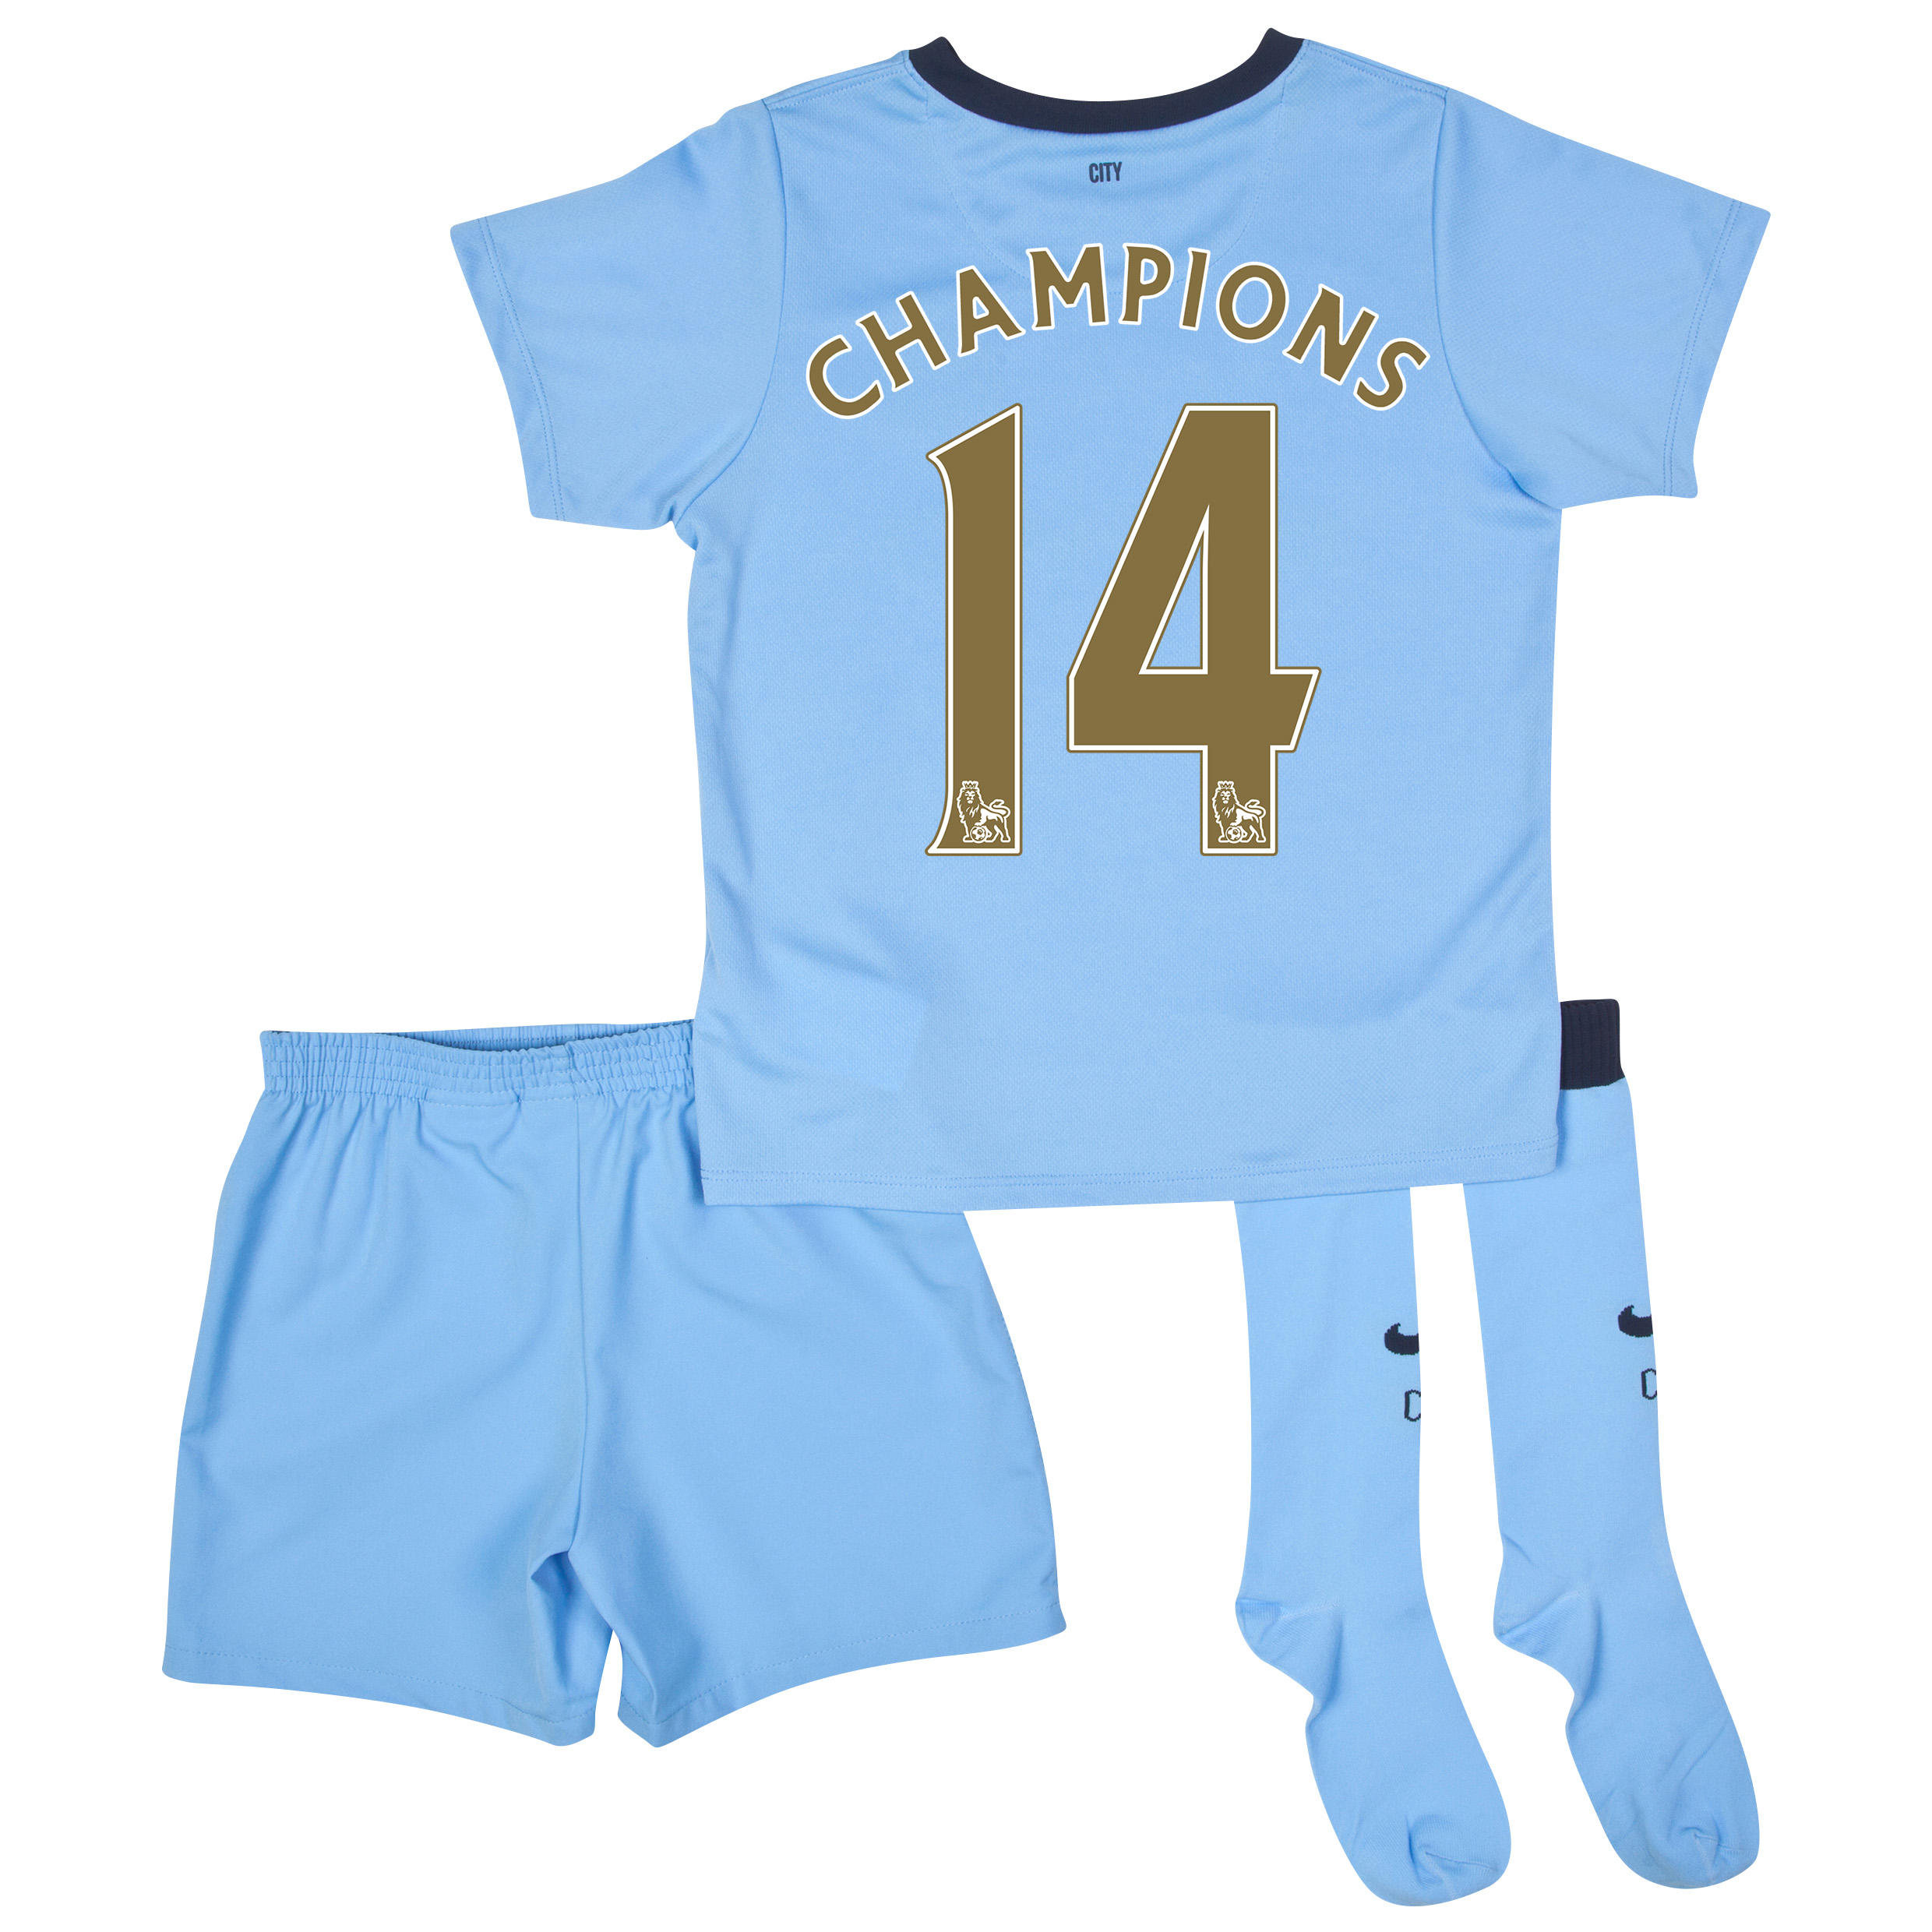 Manchester City Home Kit 2014/15 - Little Boys Sky Blue with Gold Champions 14 printing